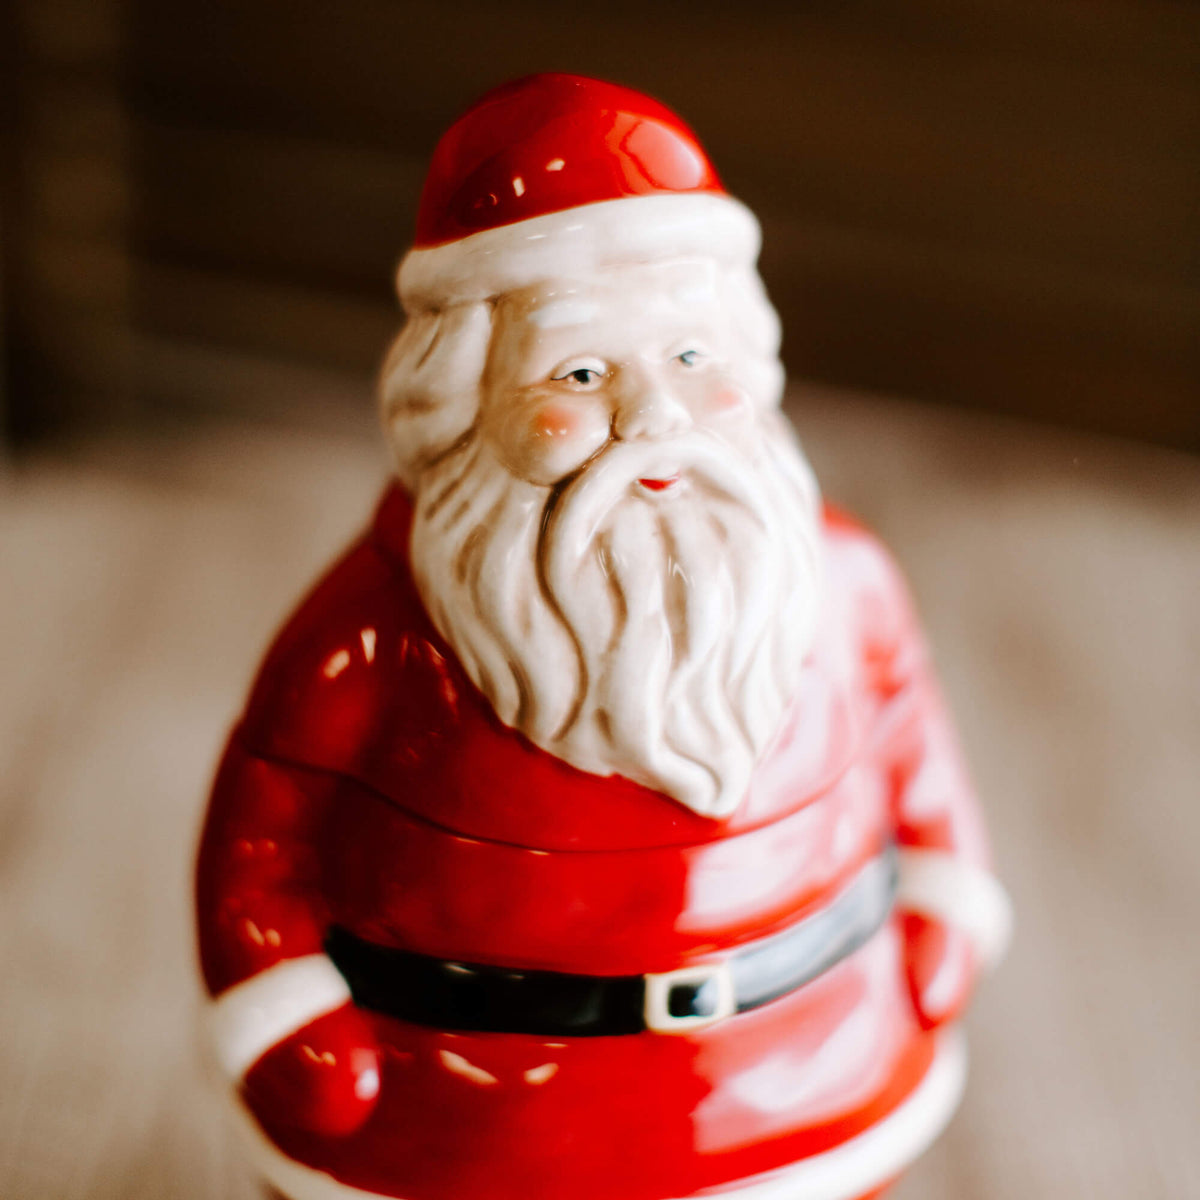 close up detail of an 11 and half inch tall stoneware Santa Claus cookie jar in red, black and white, resting on a tabletop